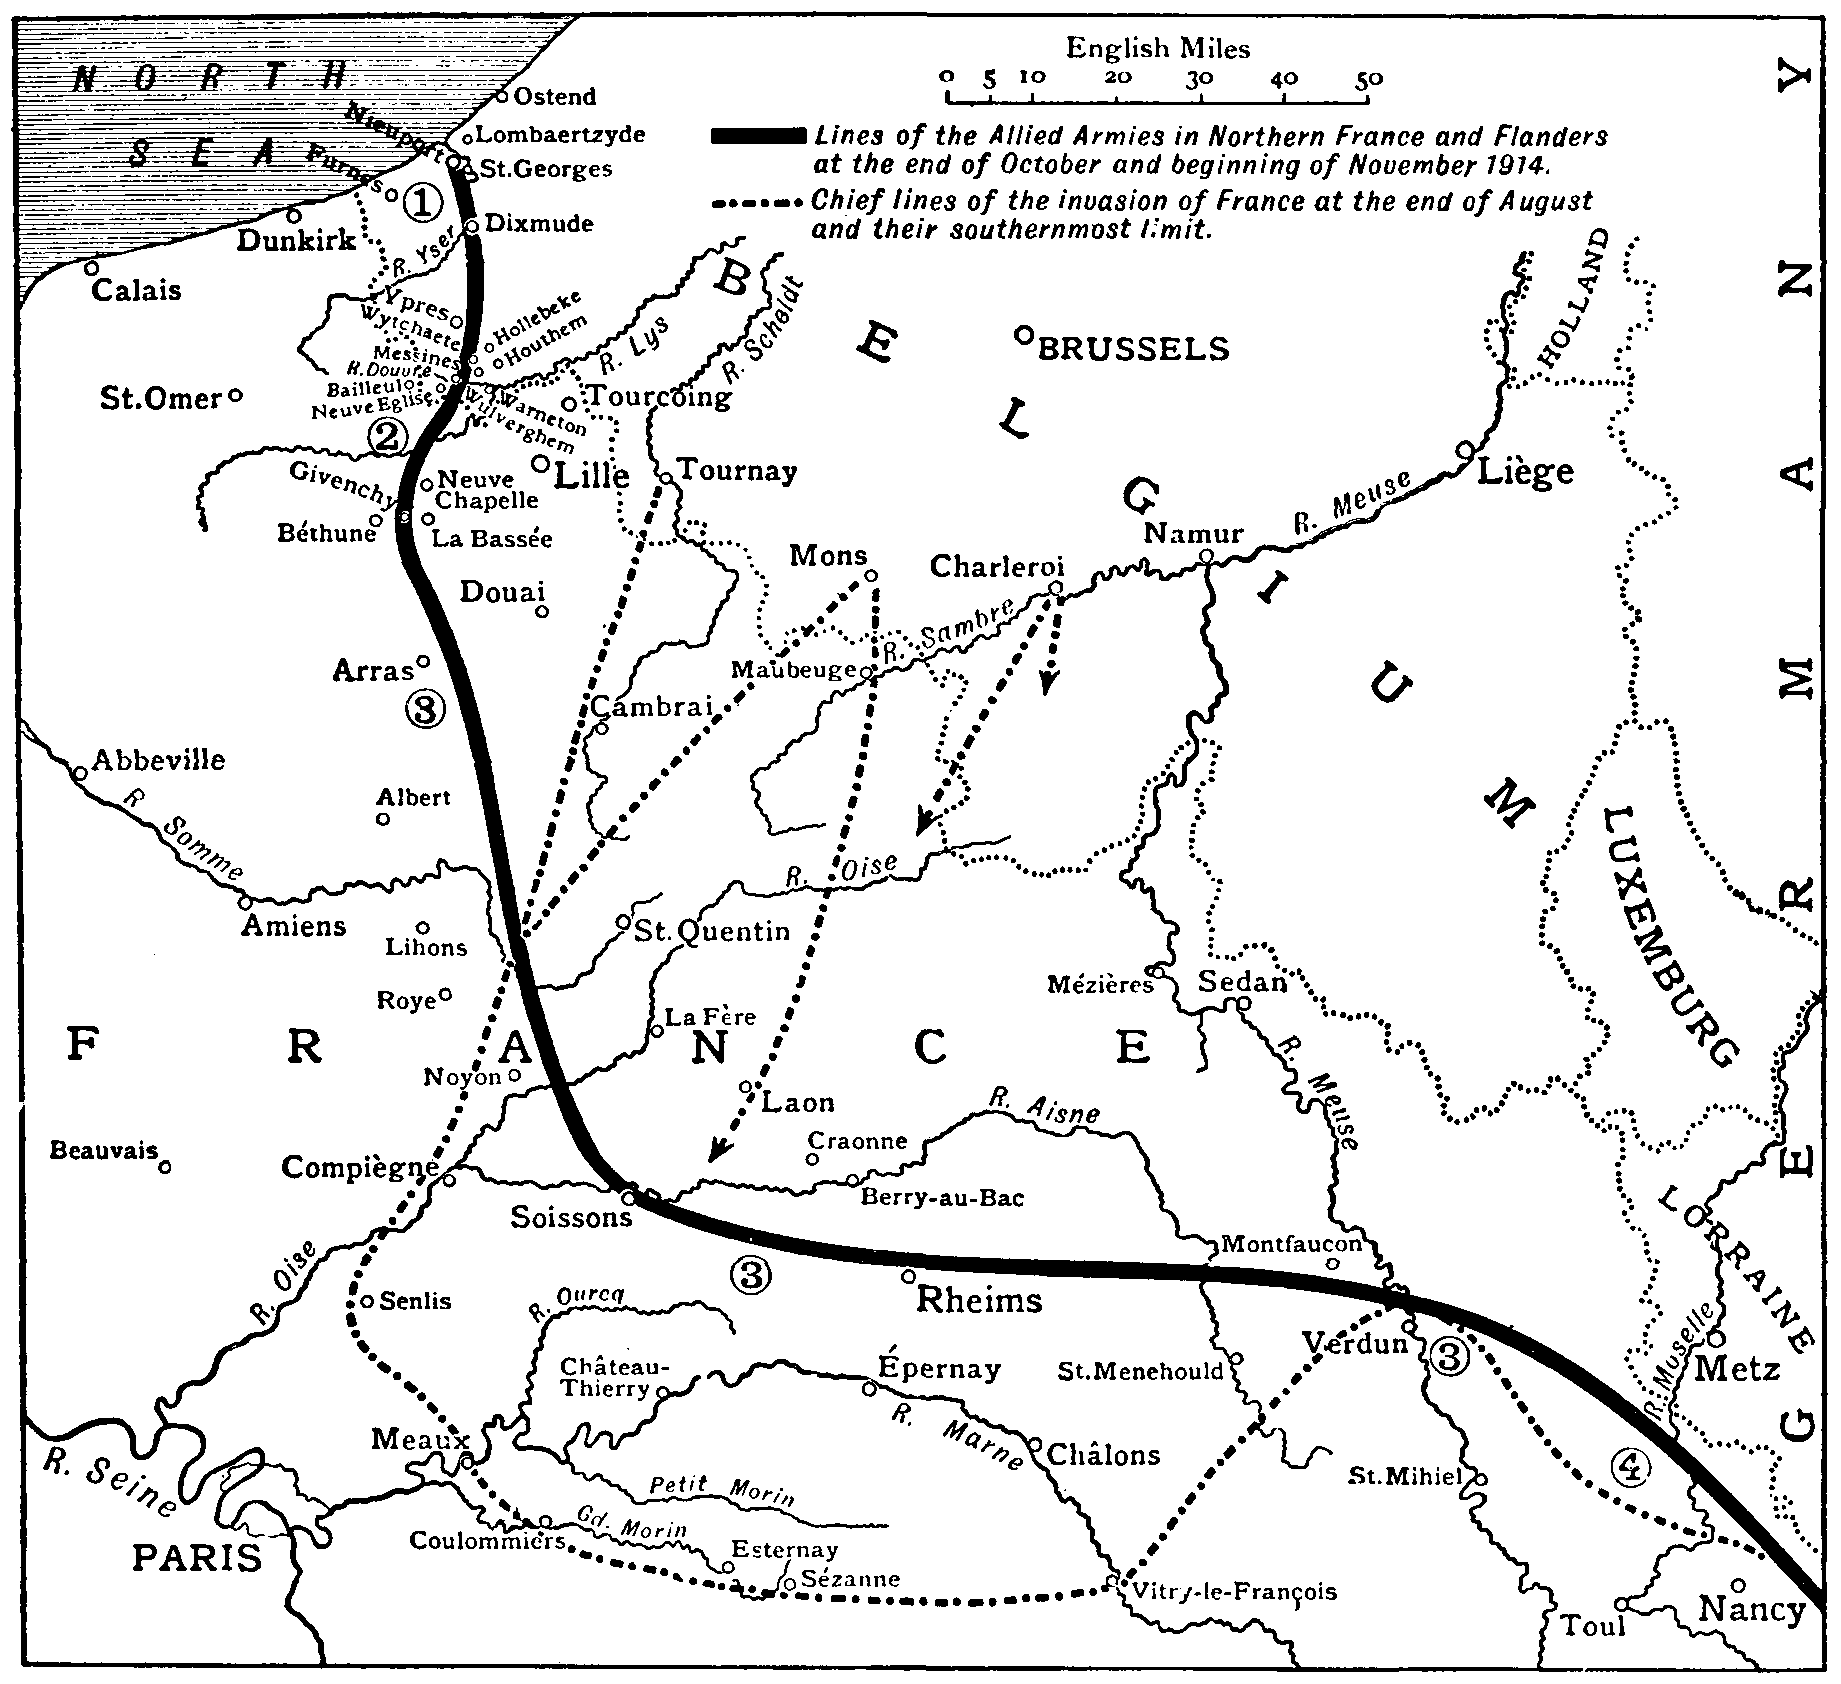 The new gresham encyclopedia volume iv part 3 map showing lines of the allied armies in northern france at the end of october and fandeluxe Gallery